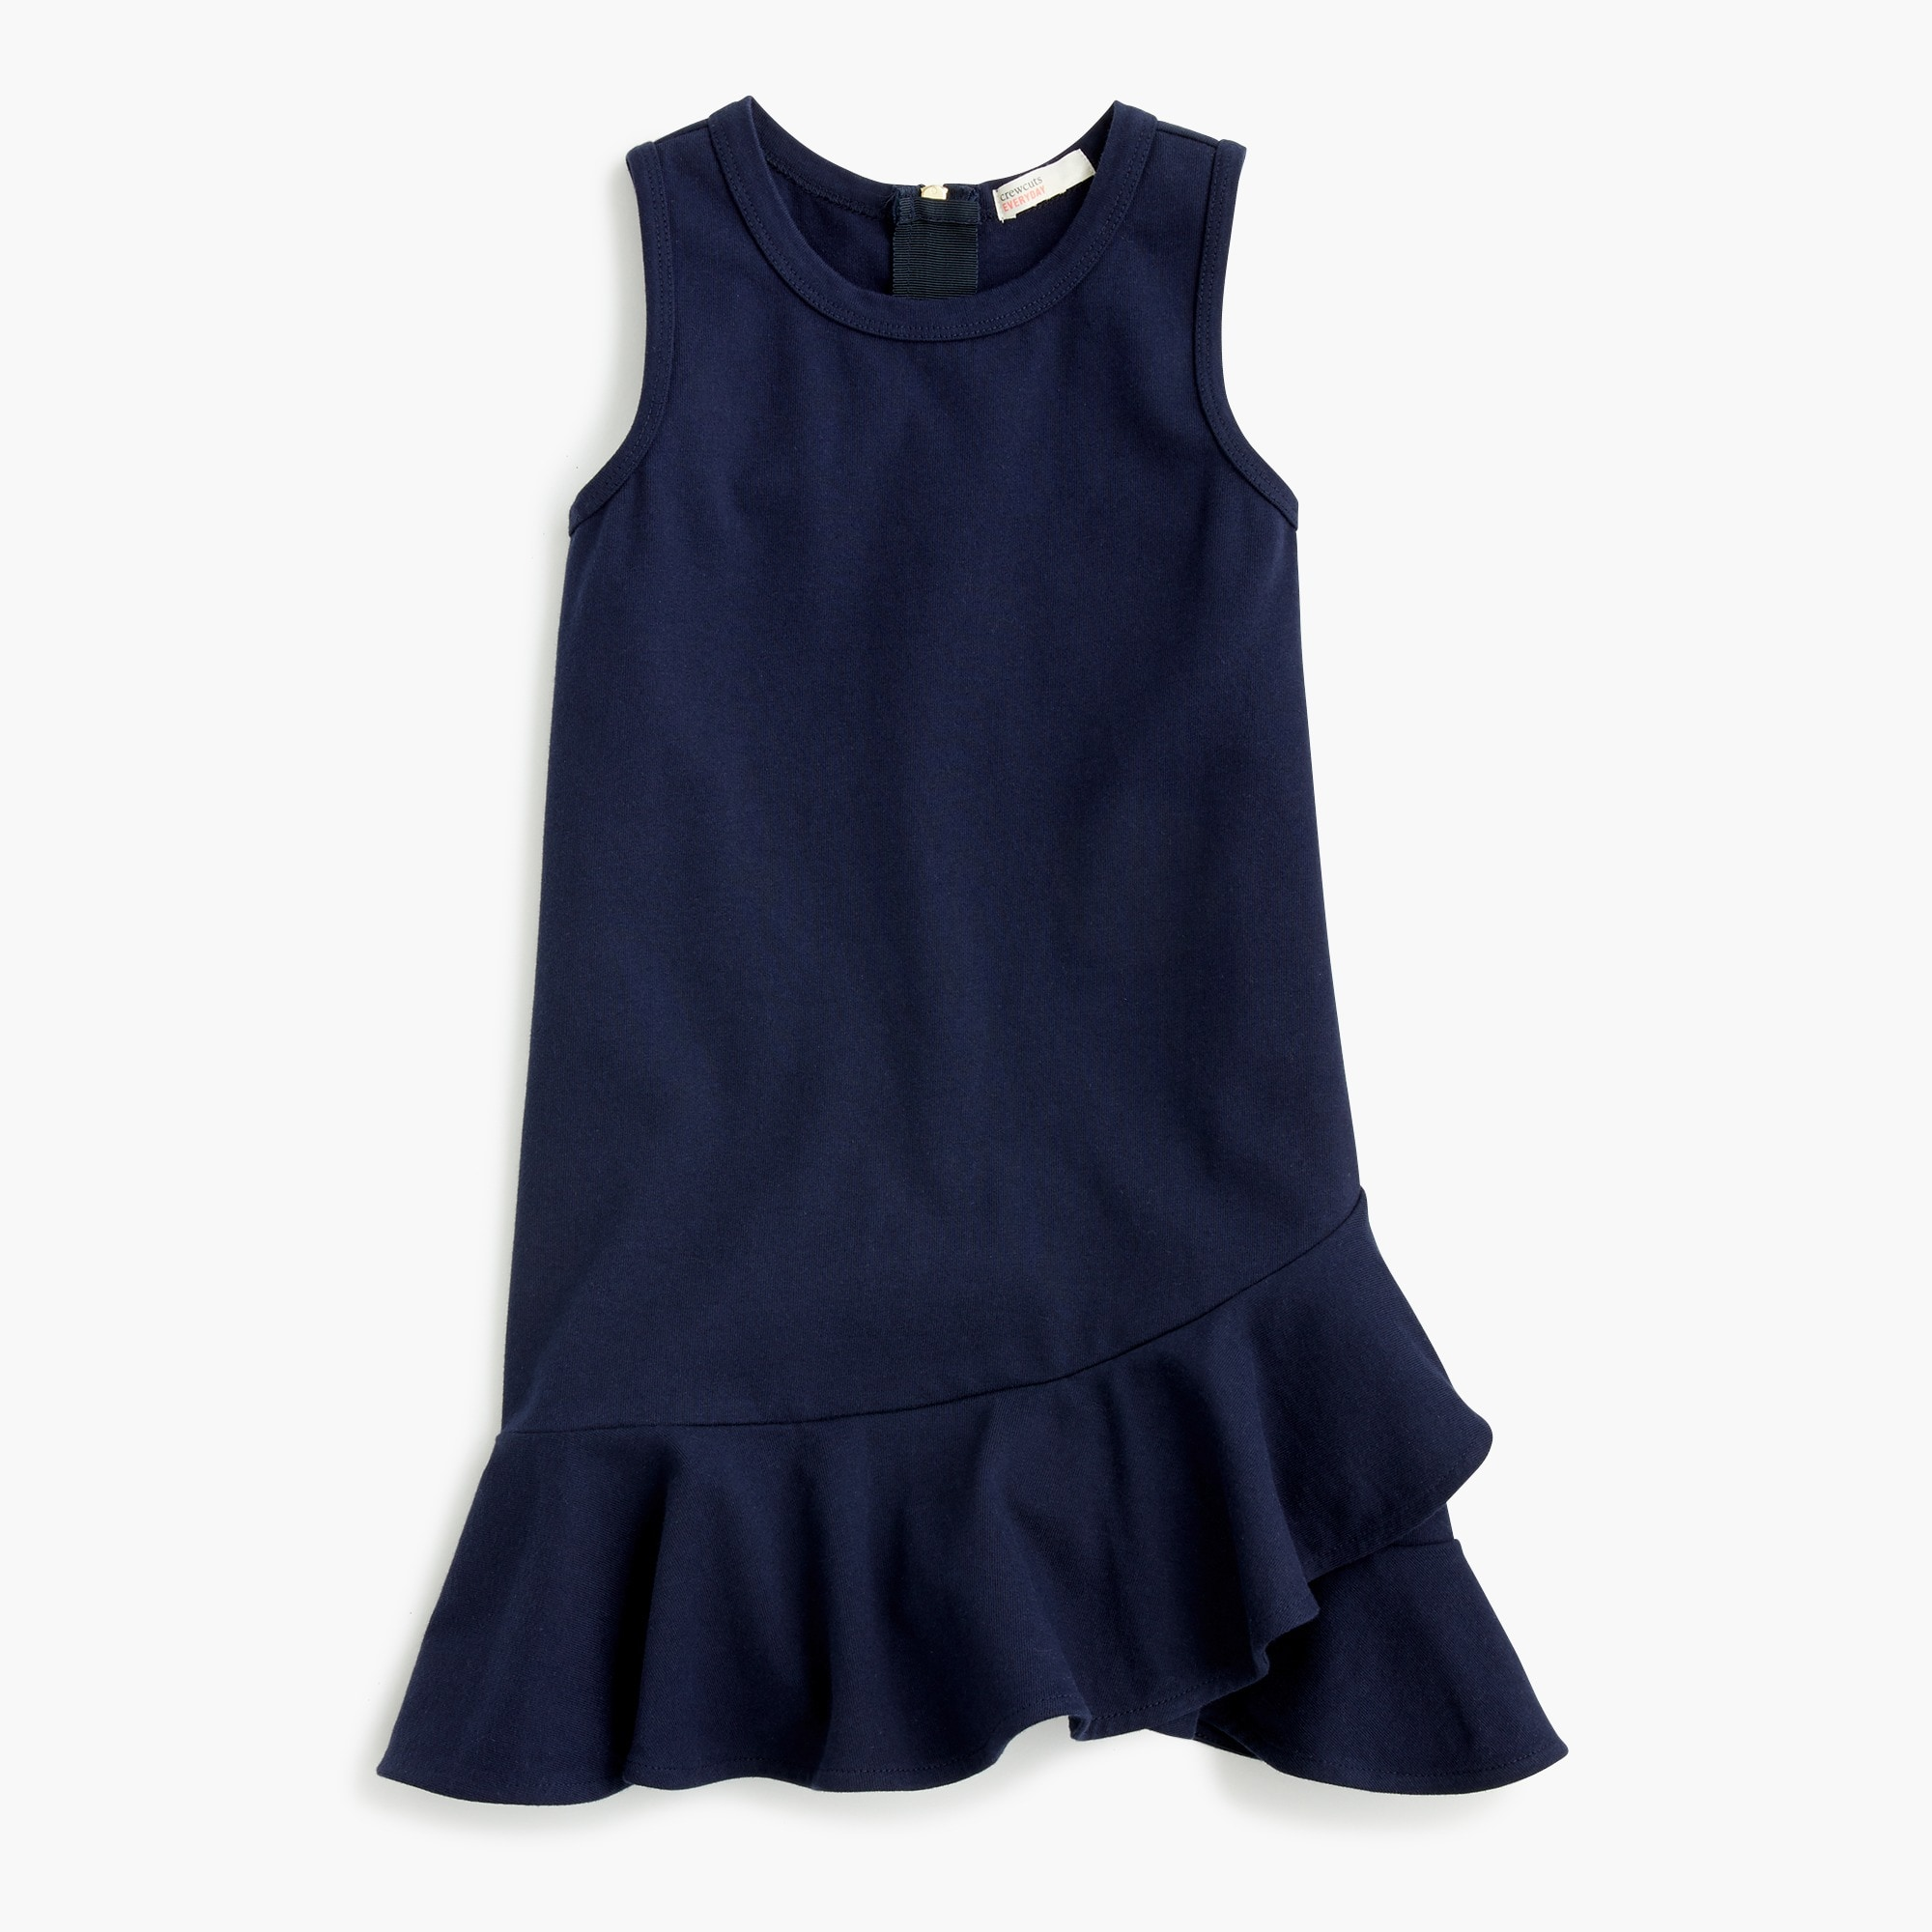 Image 2 for Girls' ruffle-hem dress